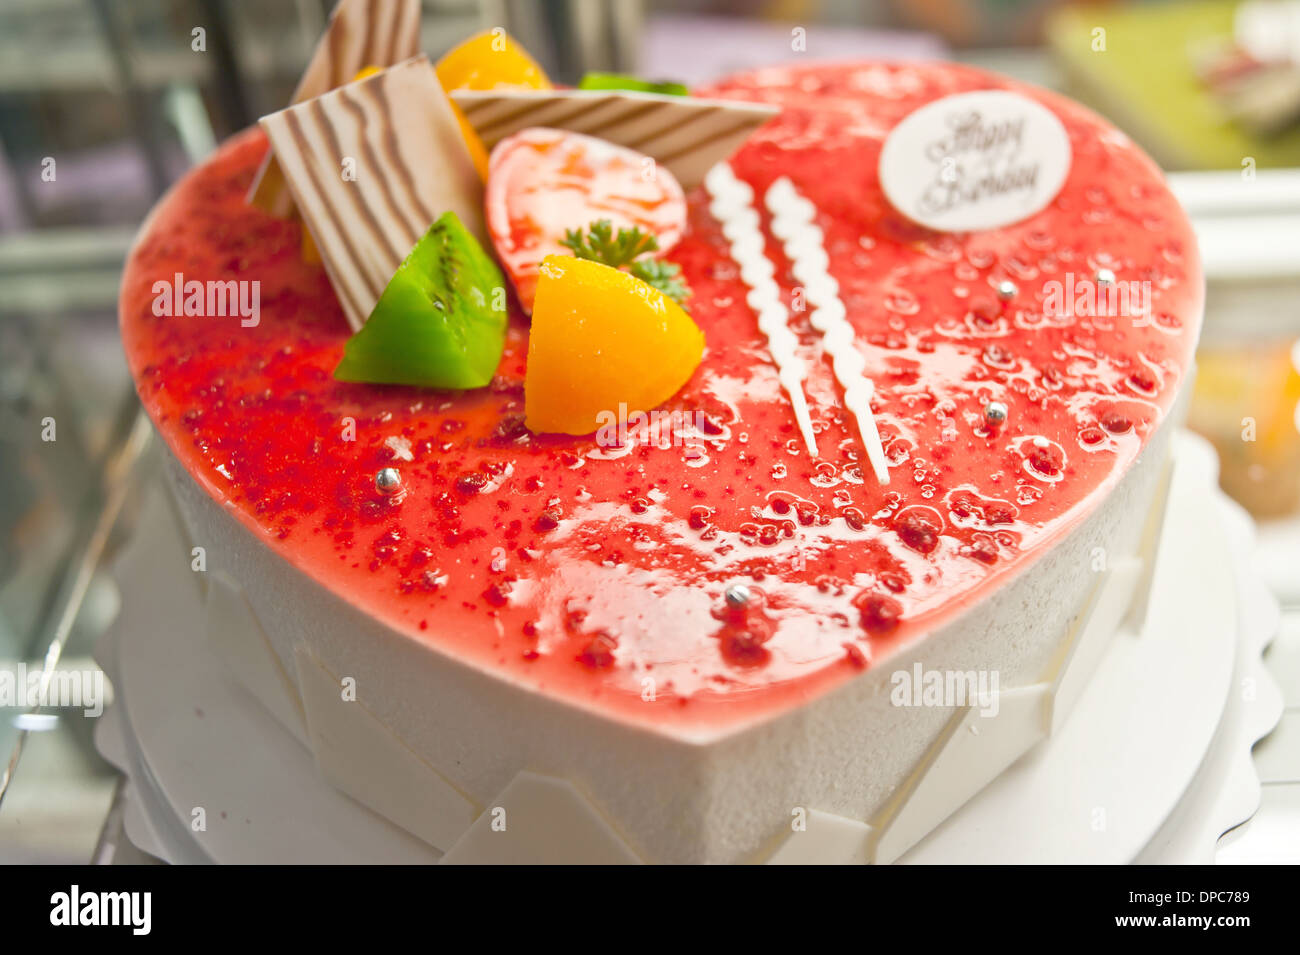 Cake Birthday Cake Dessert Food Sweets Food Cake Design Fruit Fruit